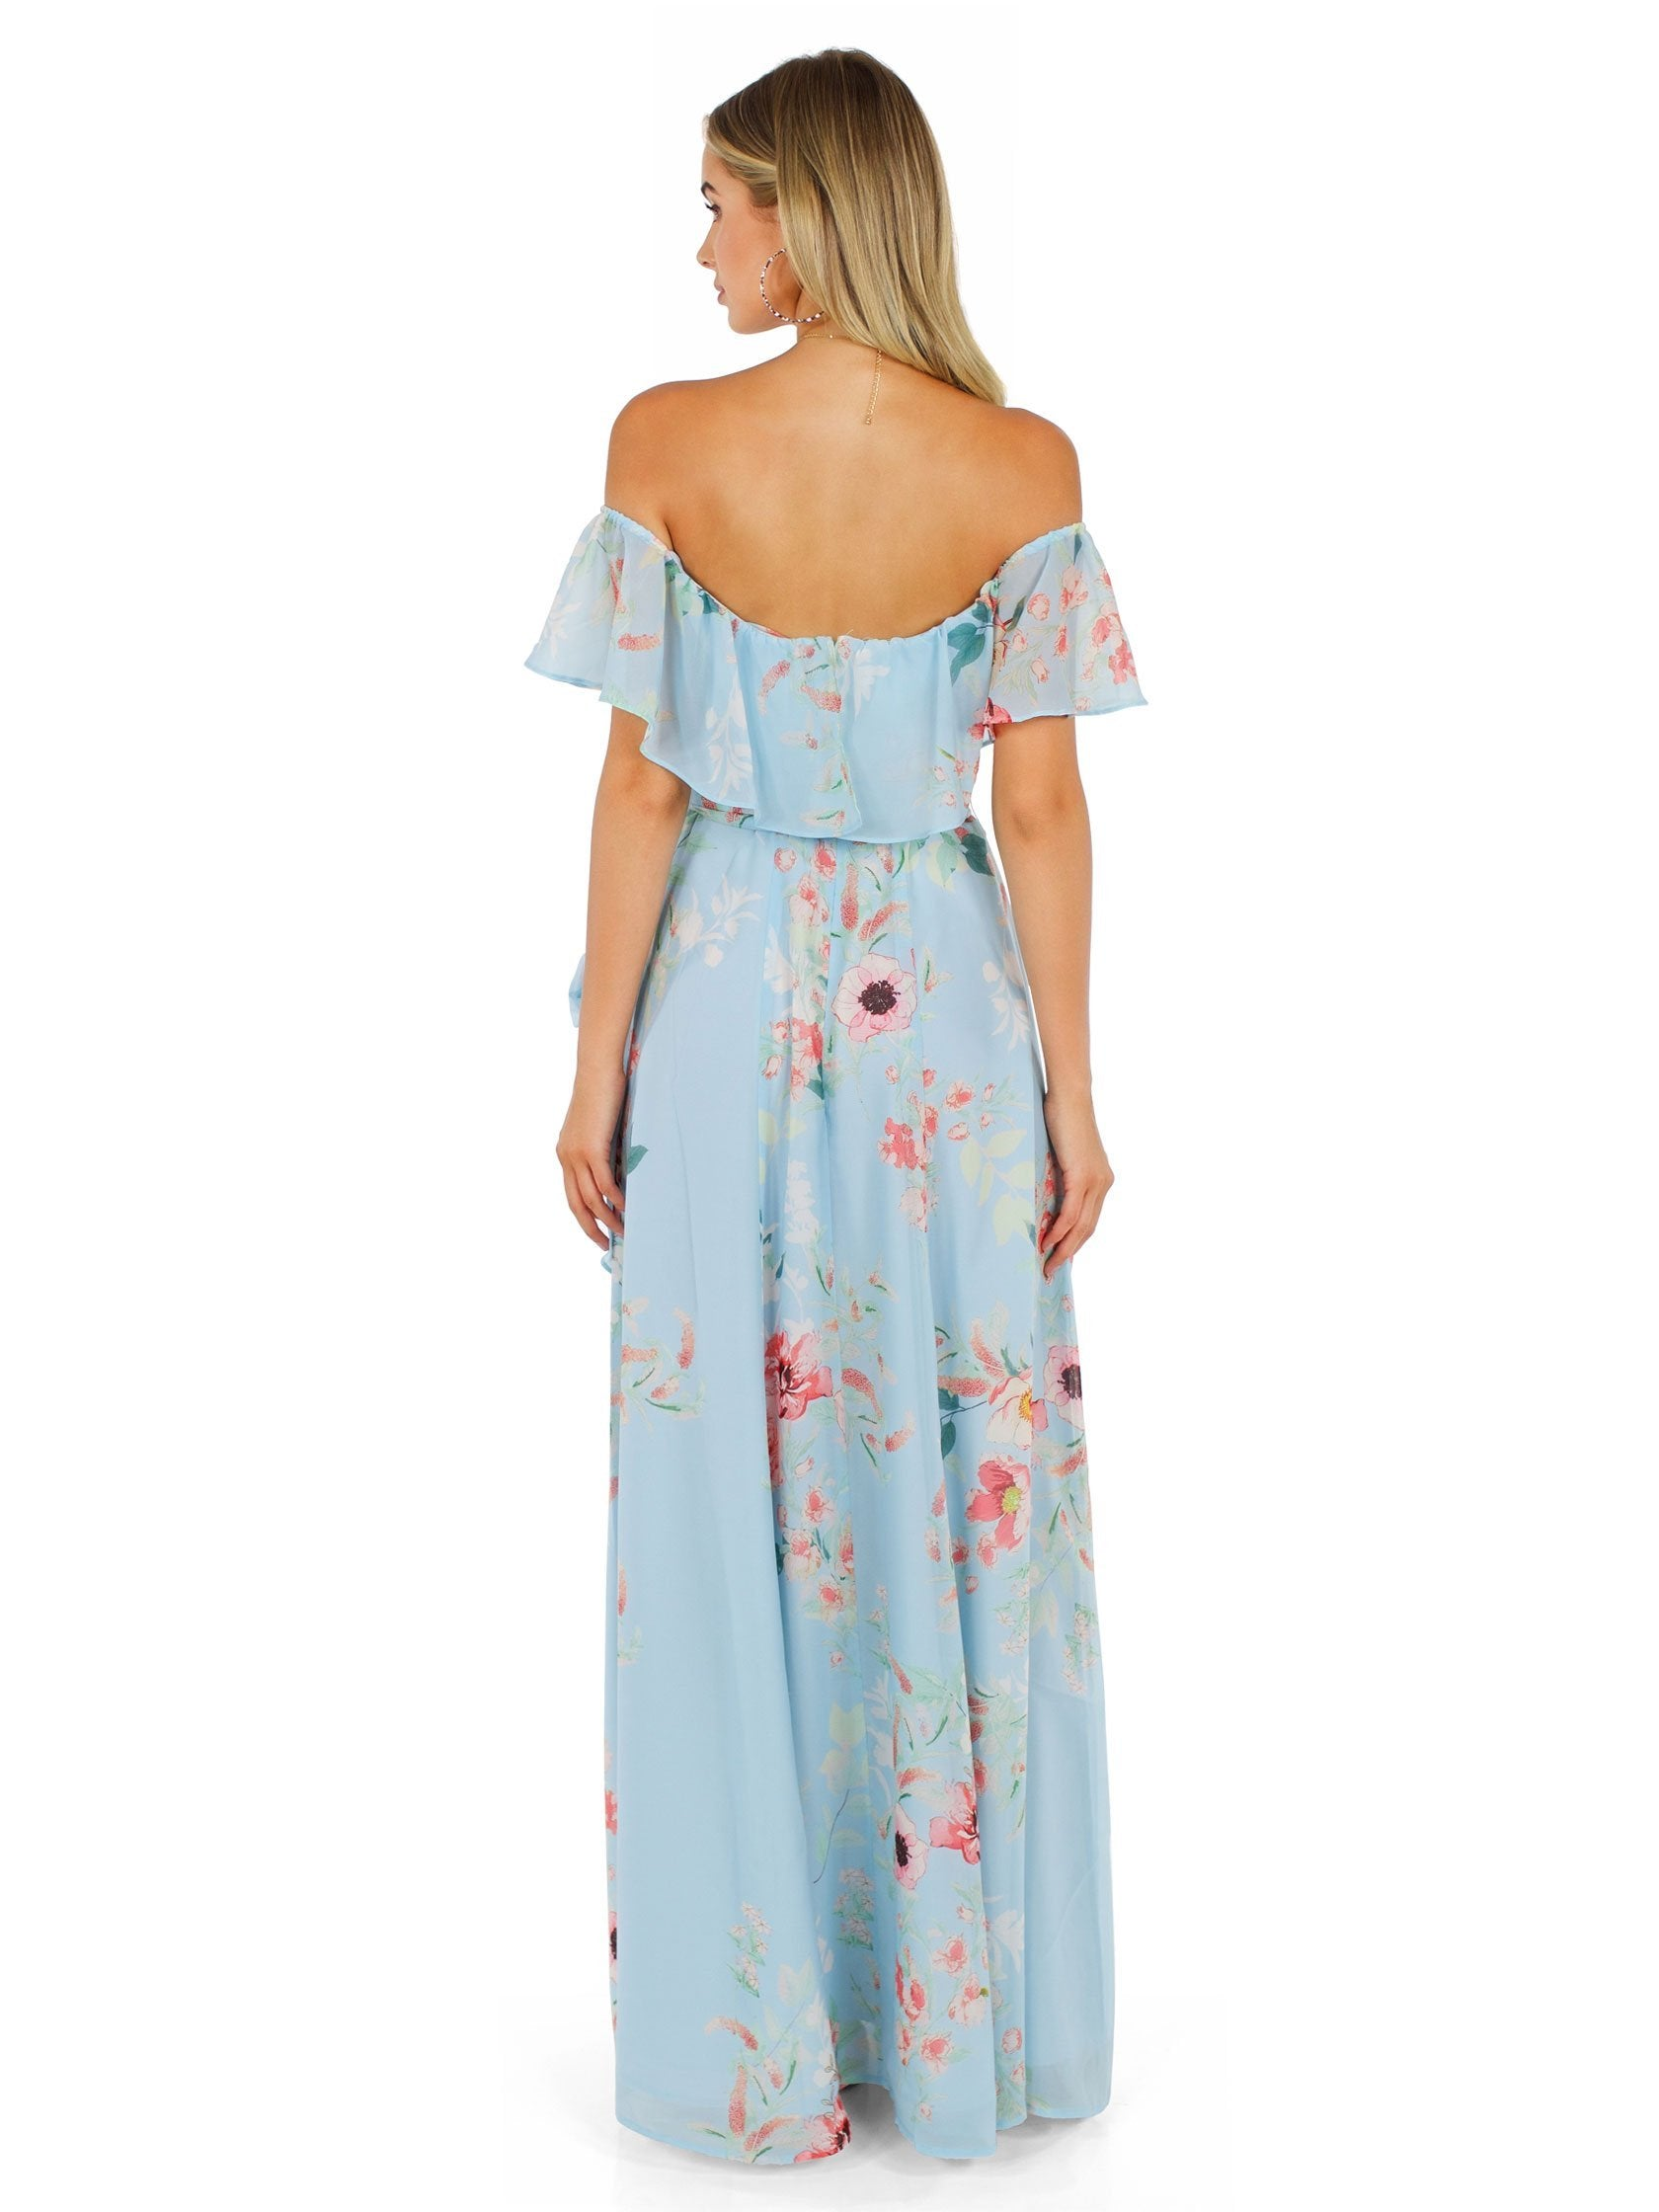 YUMI KIM Rental | Carmen Maxi Dress - FashionPass